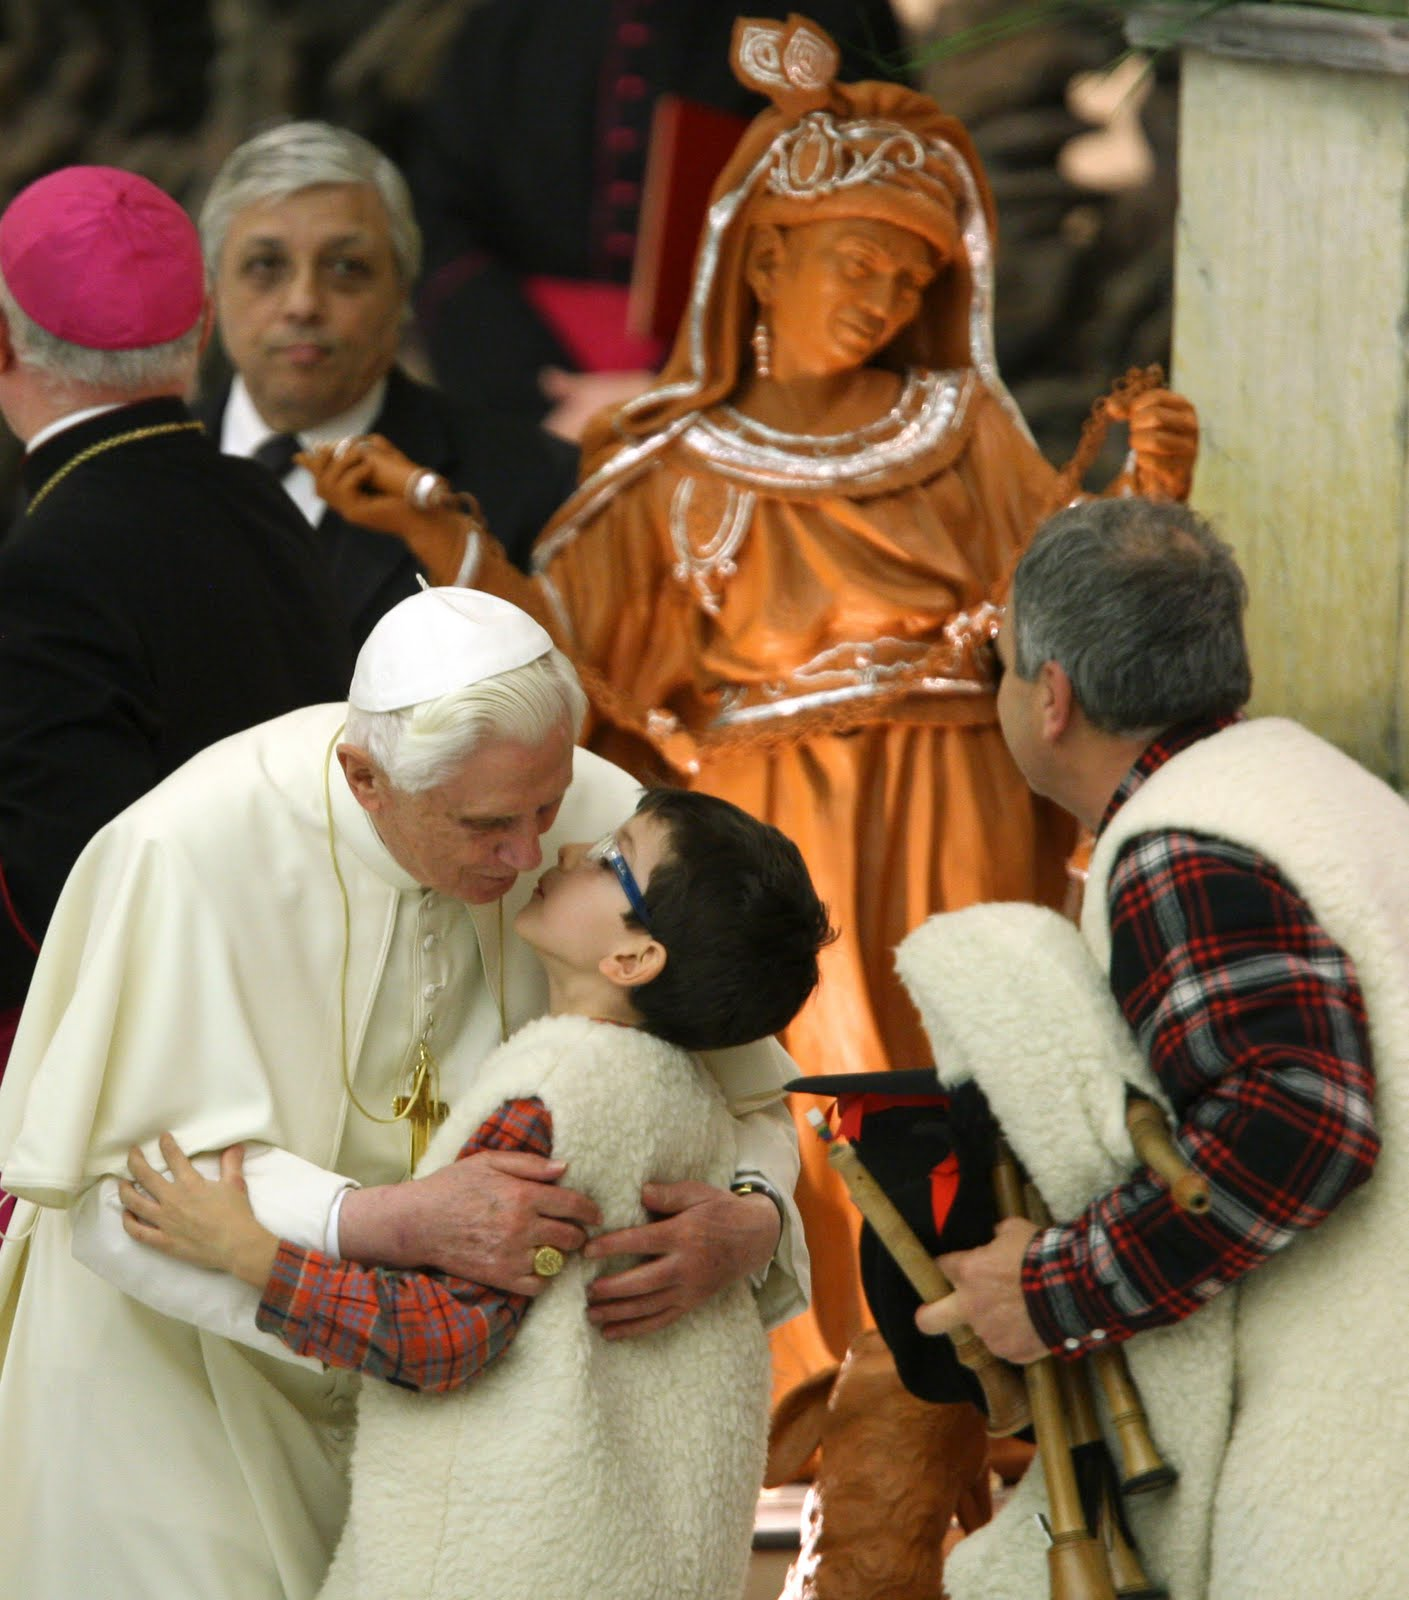 Pope kissing child on lips